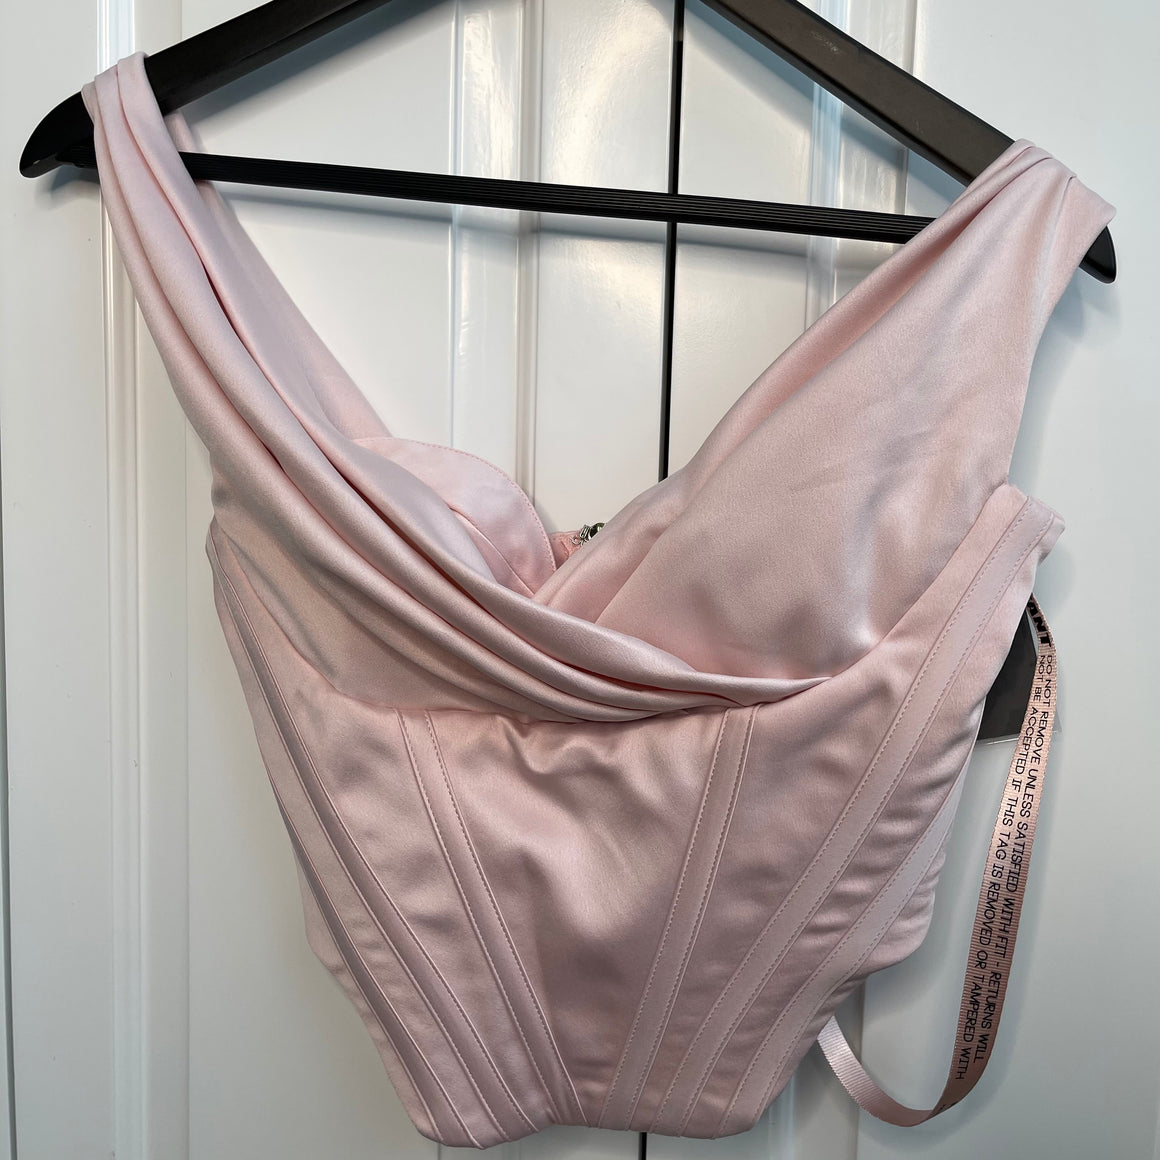 Soft Pink Satin House Of CB Bustier